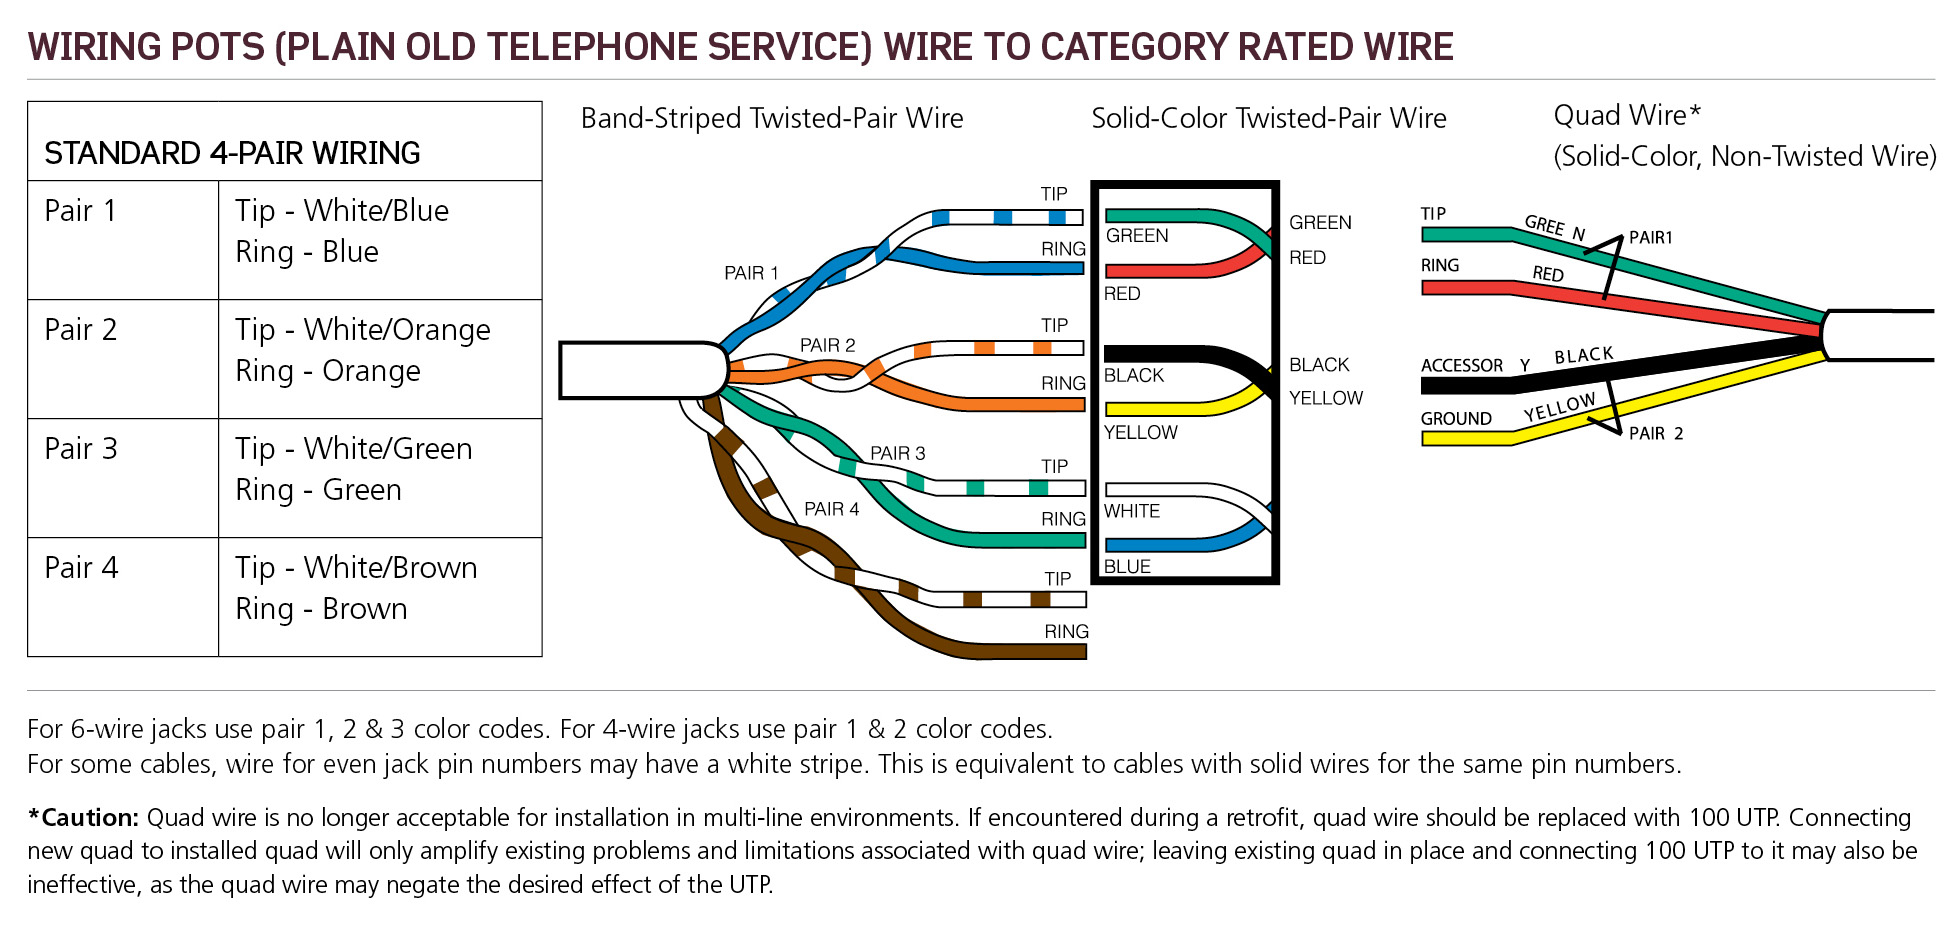 medium resolution of rj11 phone wiring diagram wiring diagram portal rj11 6 wire telephone rj11 wire diagram